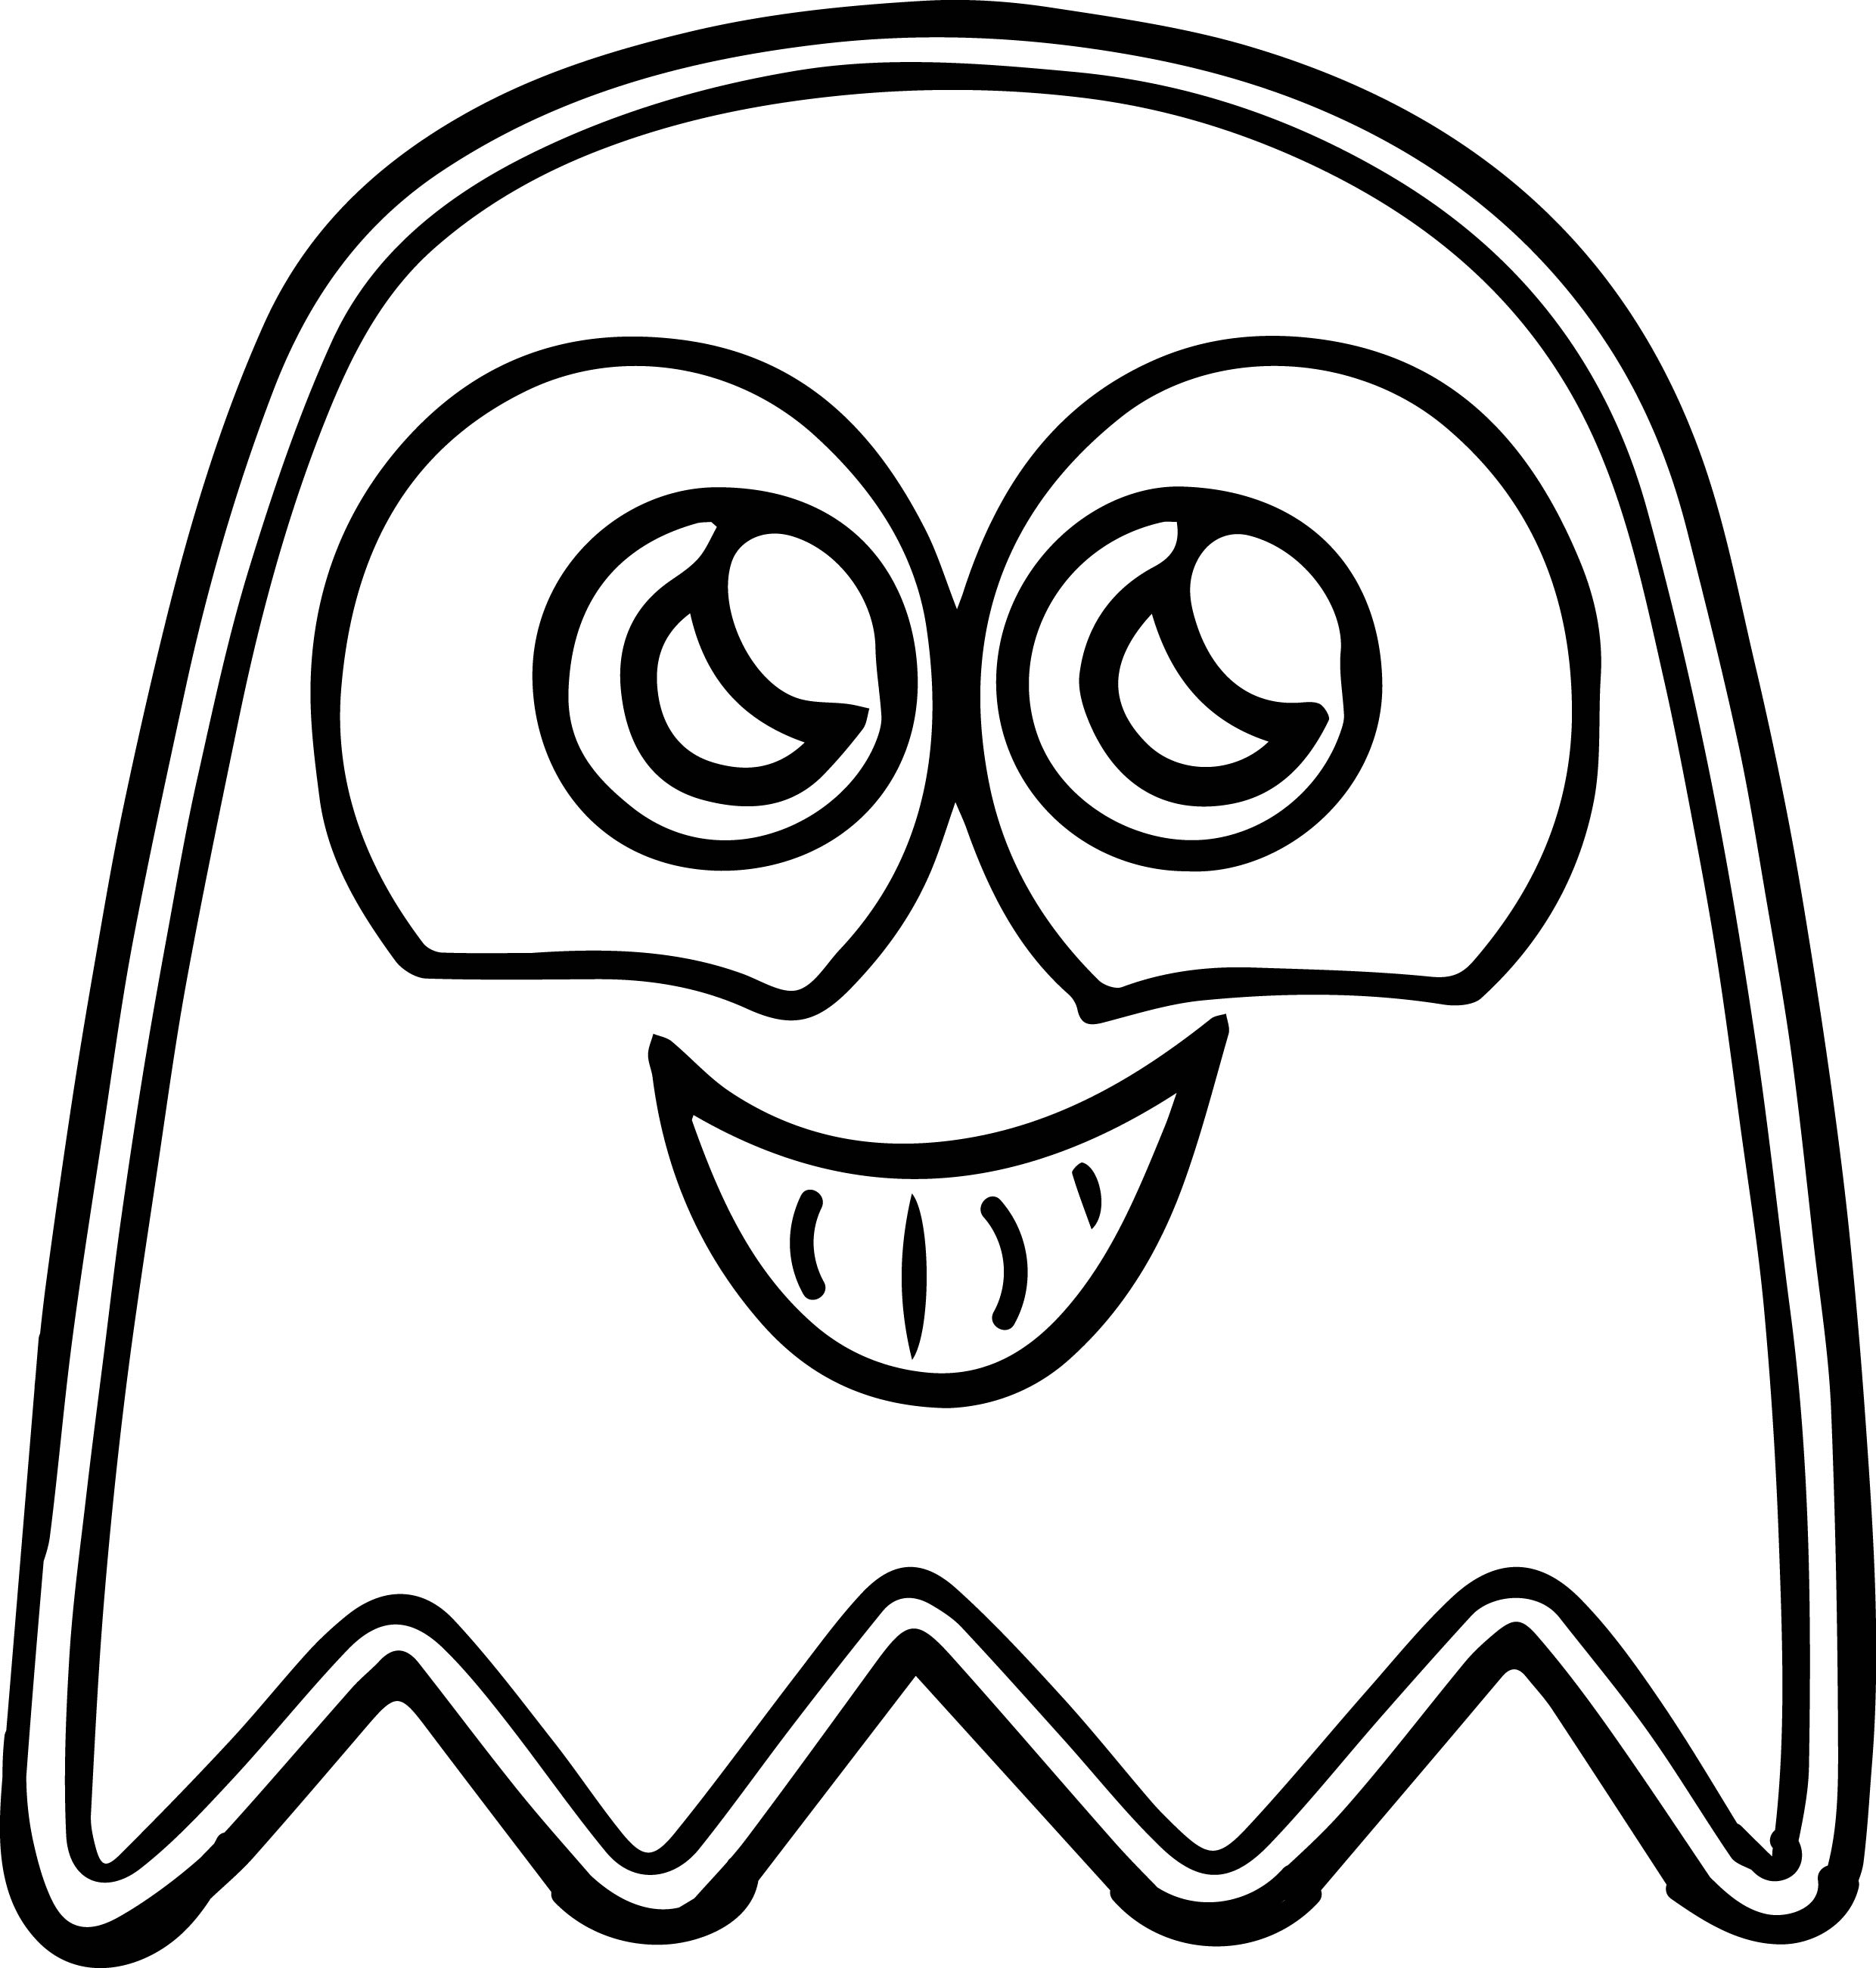 2480x2602 Pacman Cute Ghost Coloring Page Wecoloringpage